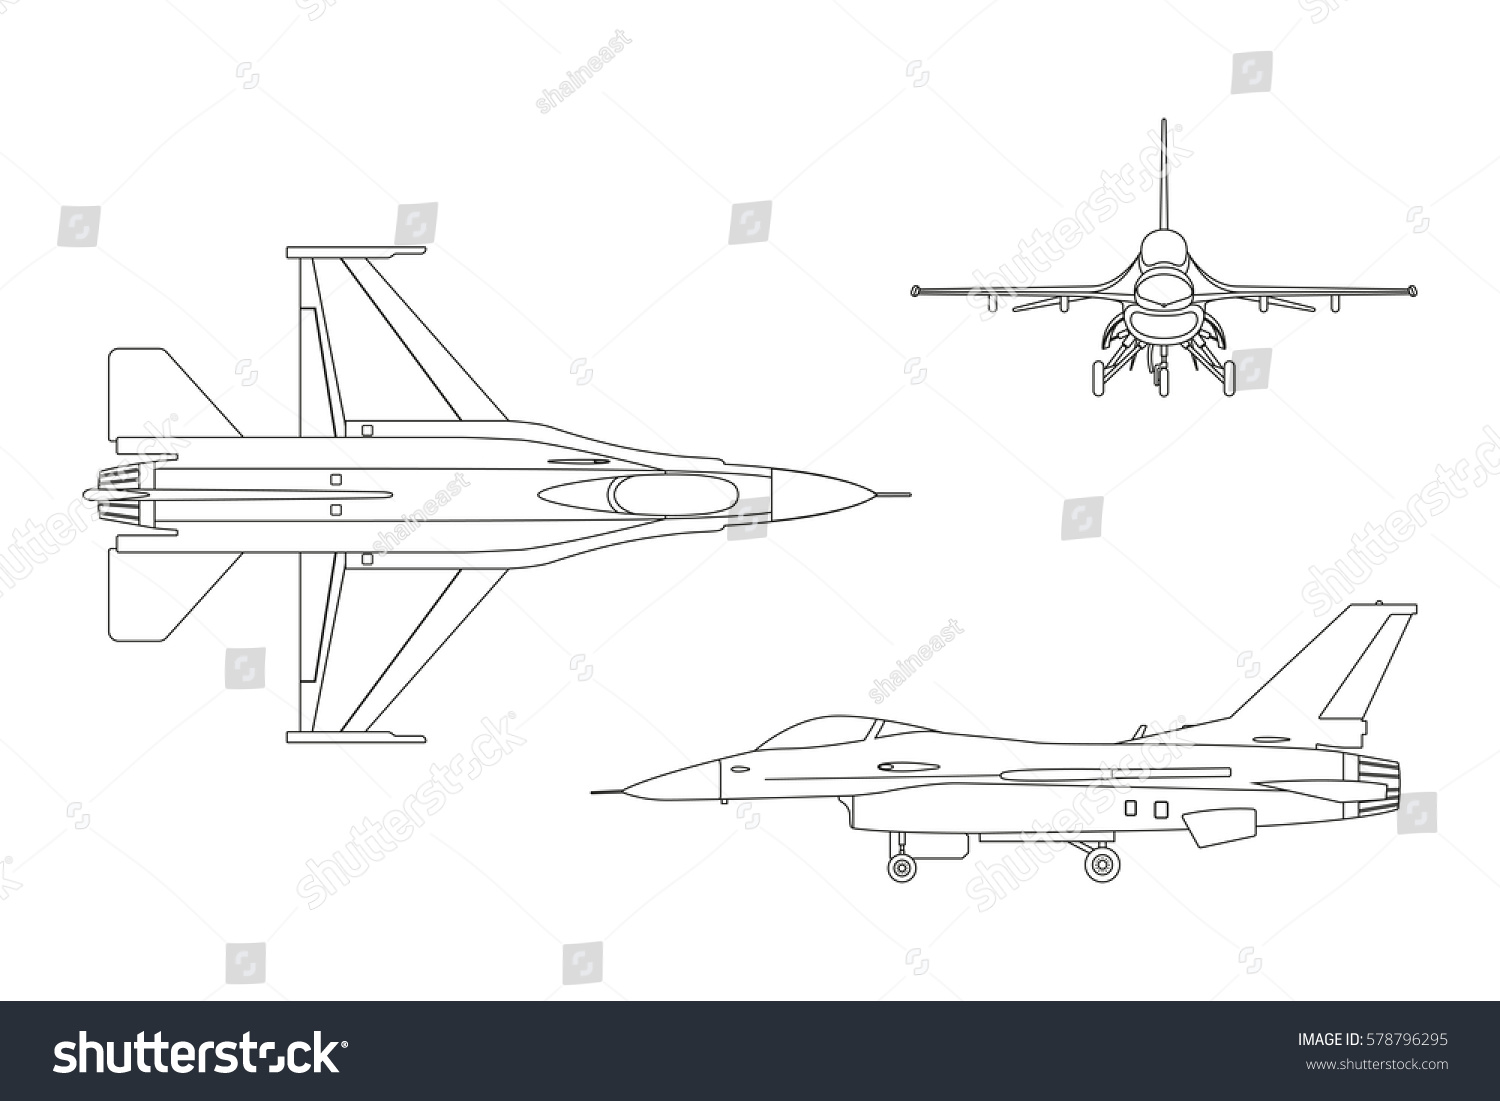 outline drawing military aircraft top side stock illustration